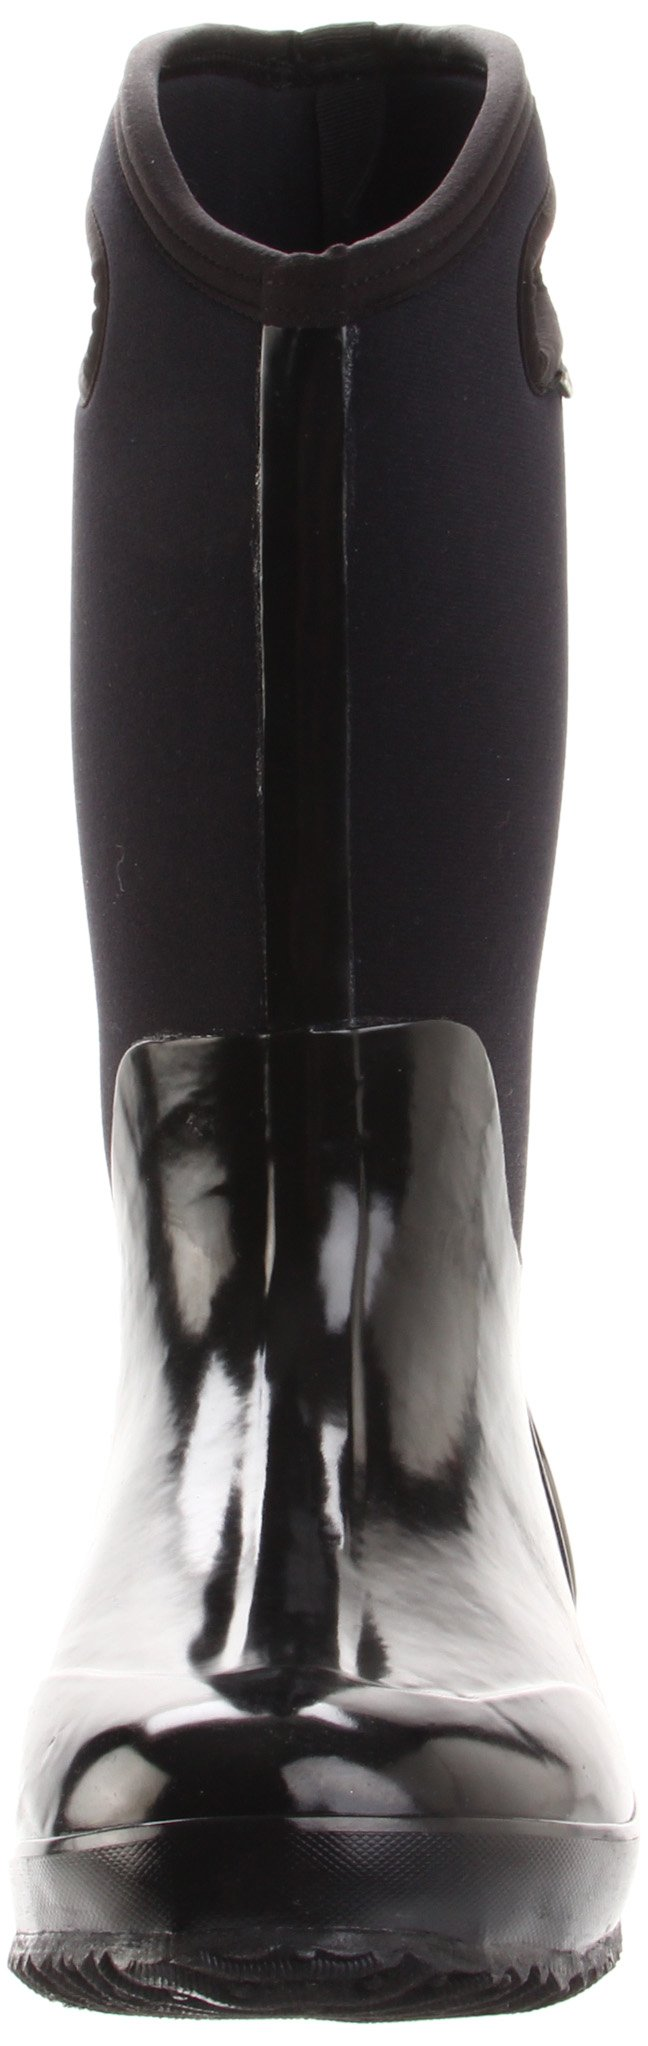 Bogs Women's Classic High Handle Waterproof Insulated Boot,Black Smooth,7 M US by Bogs (Image #4)